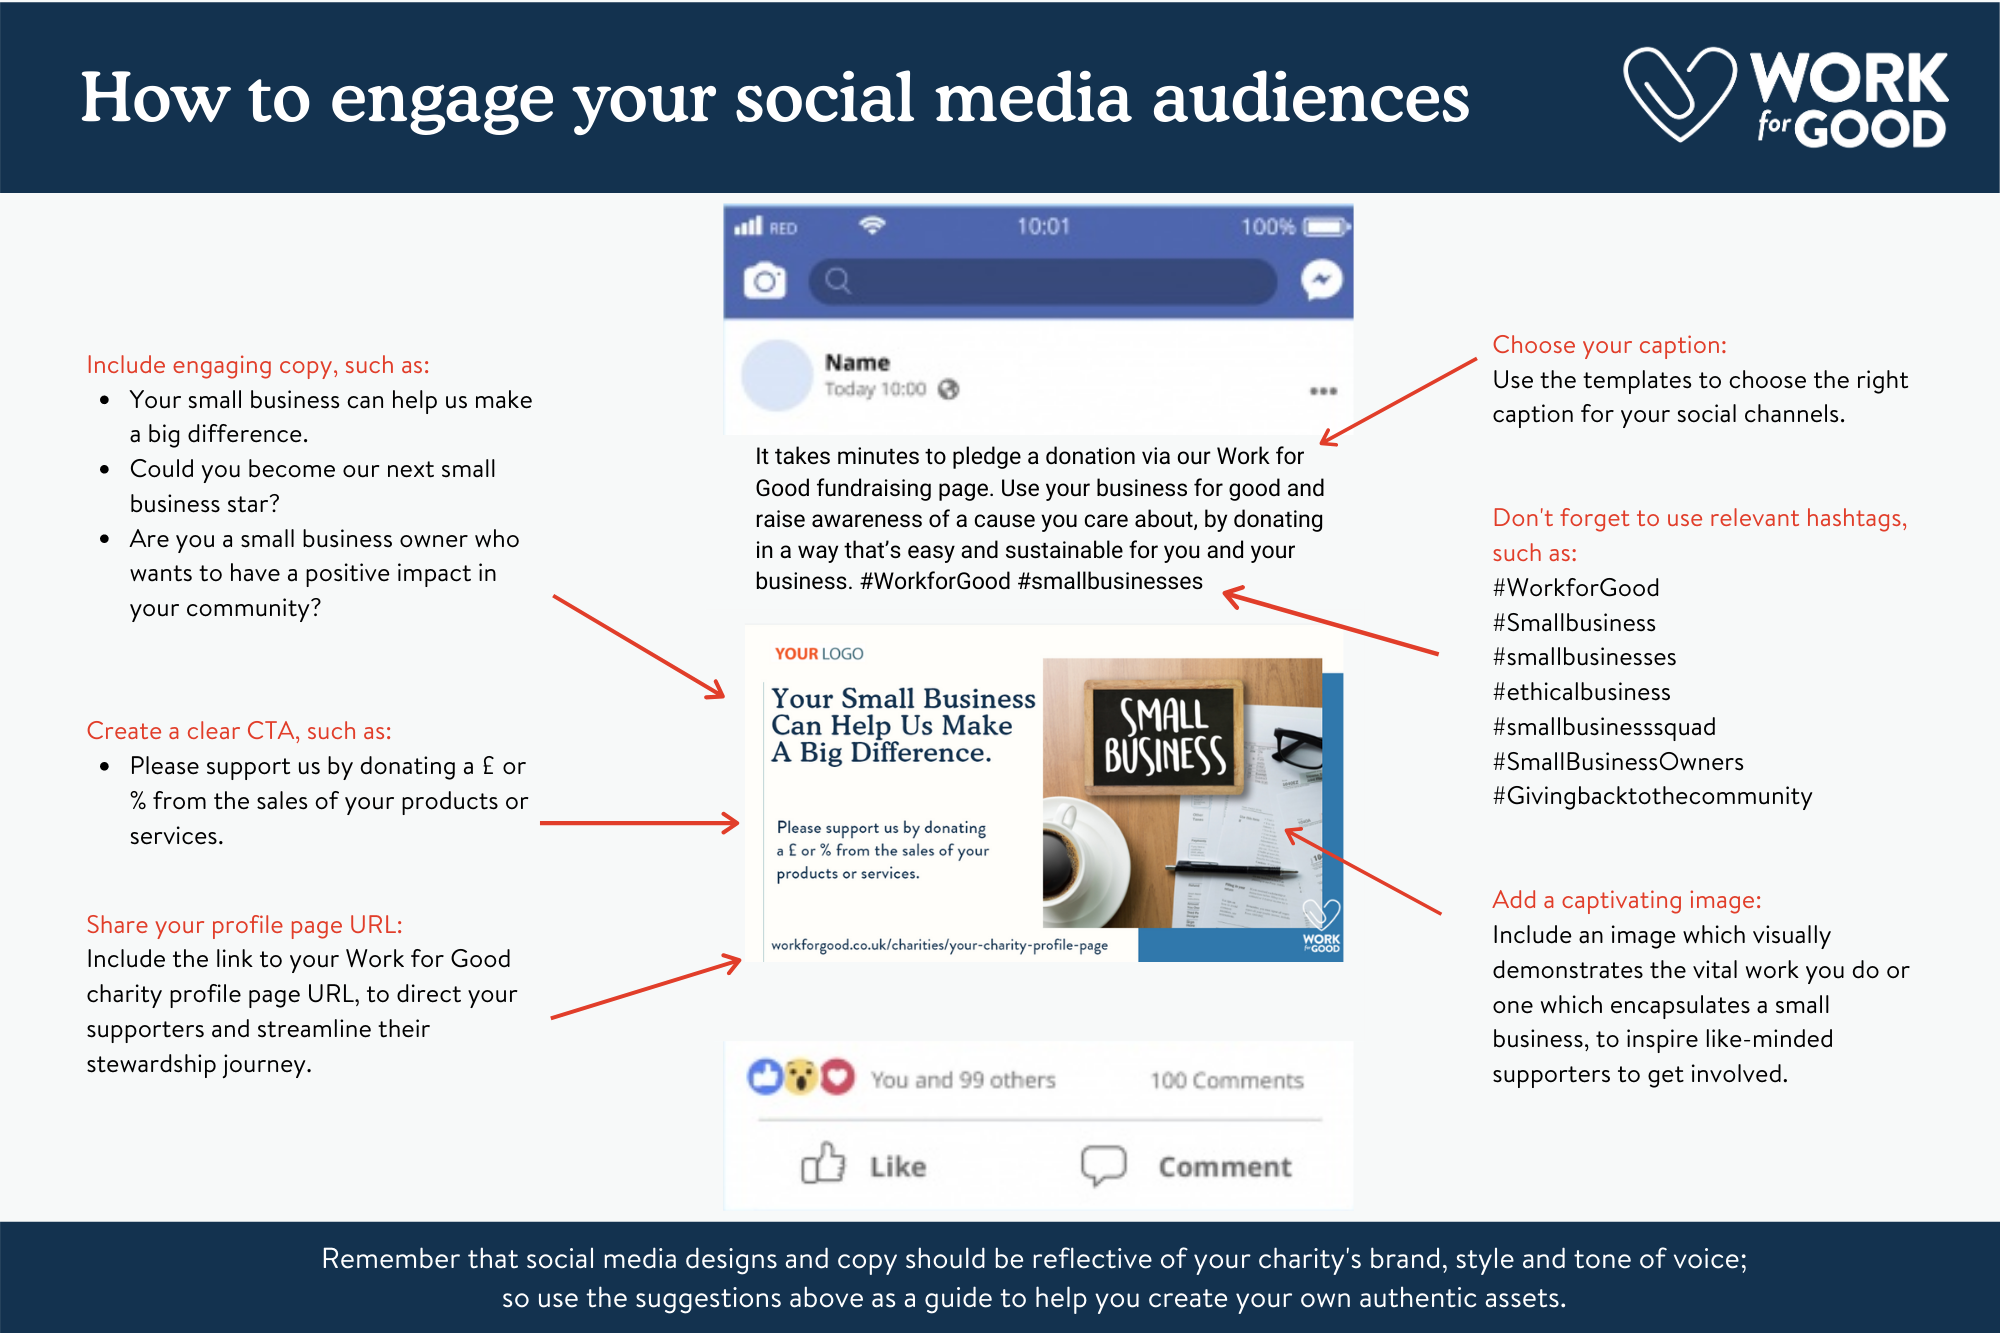 How to engage your social media audiences